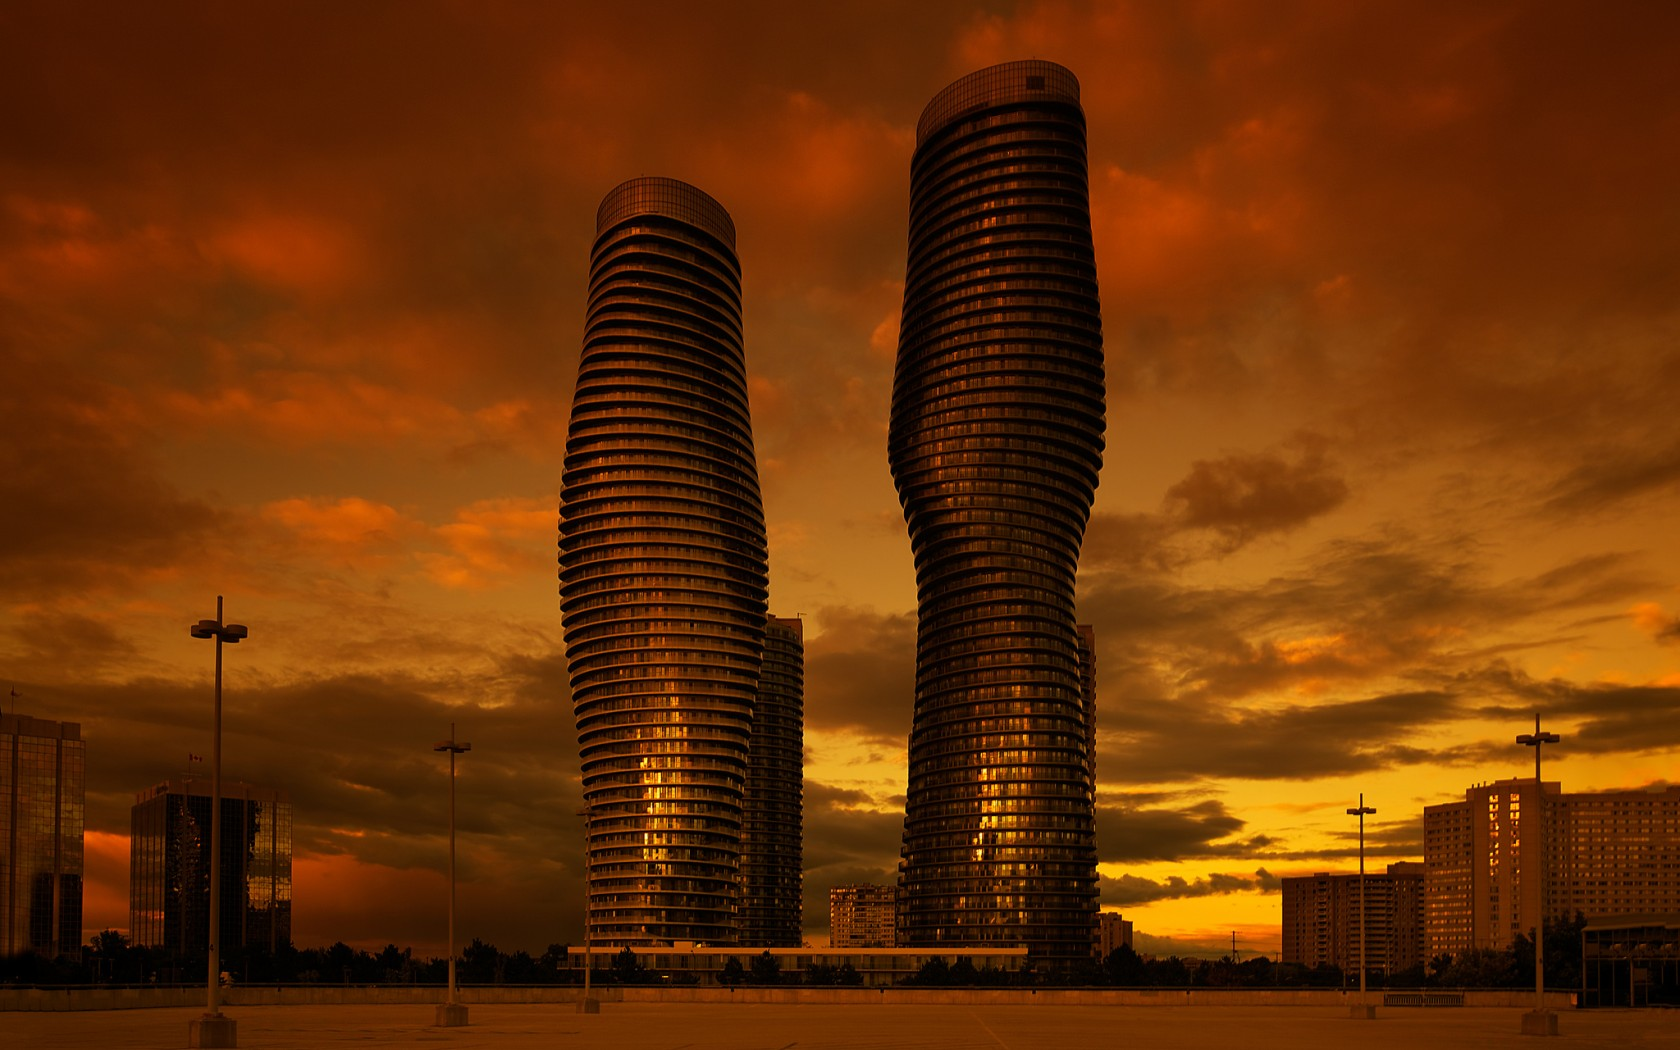 Absolute world towers wallpapers 1680x1050 290081 - Wallpaper architektur ...